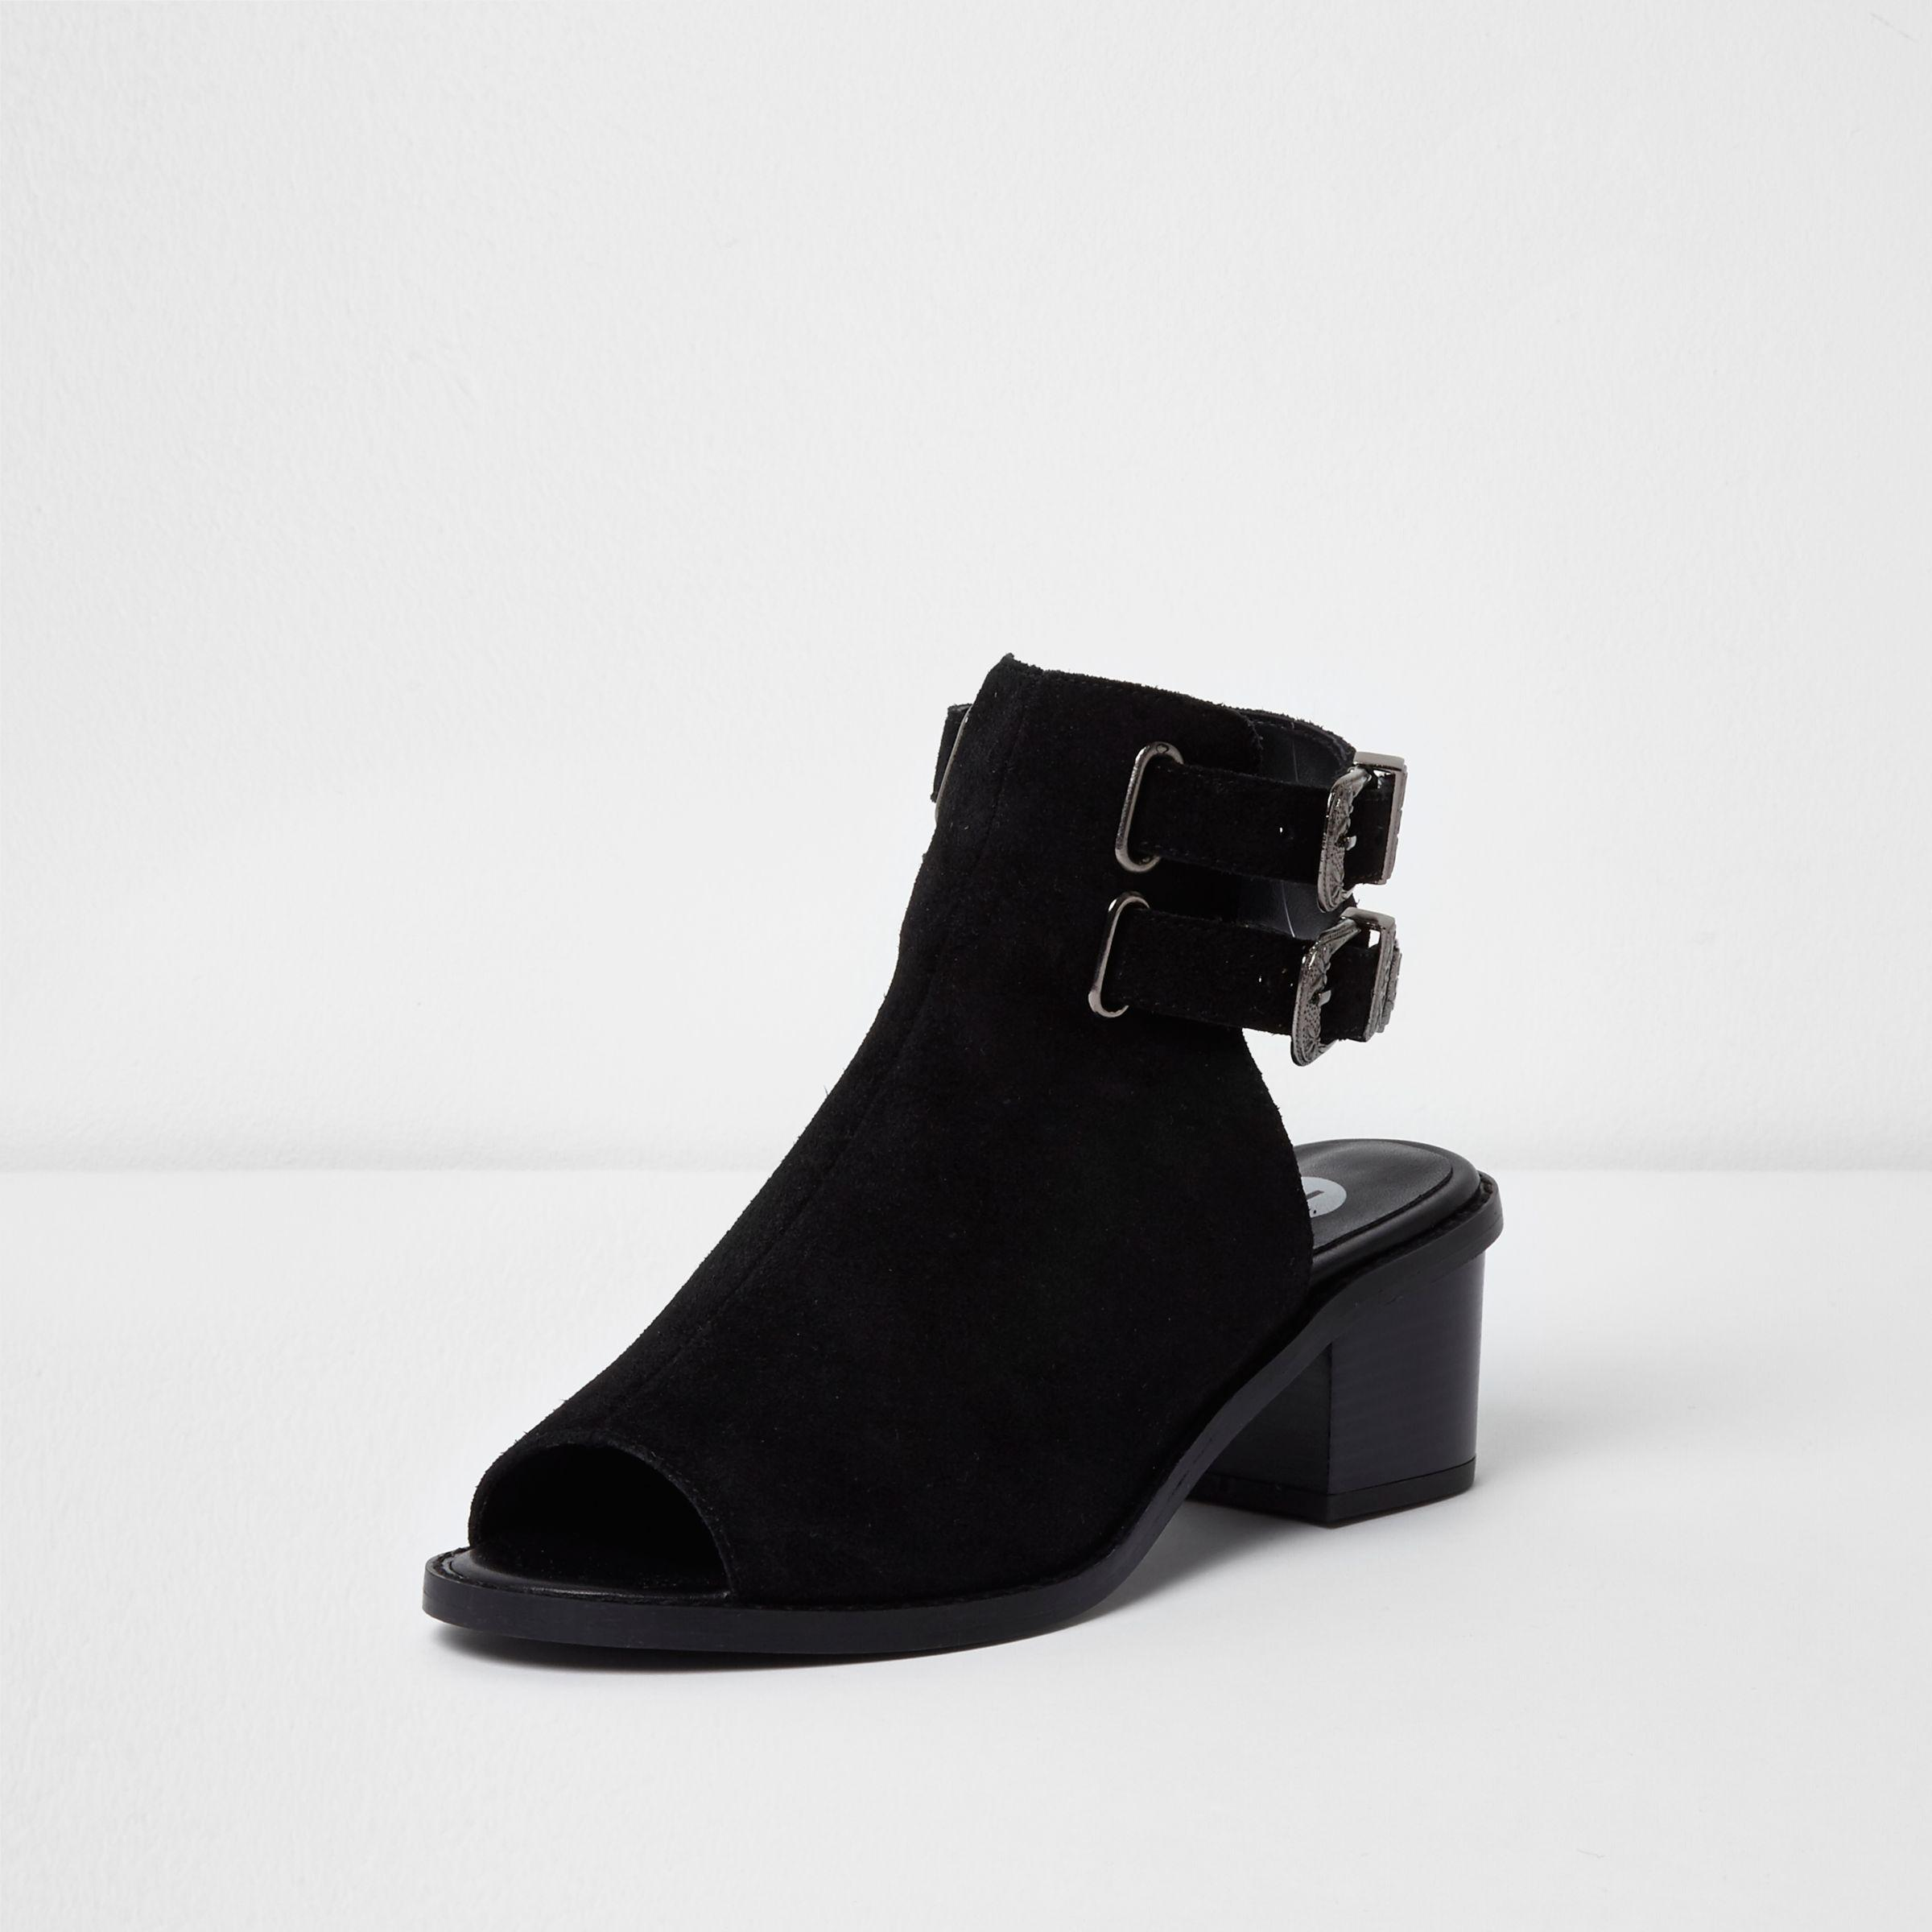 Lyst - River Island Black Suede Western Style Peep Toe Shoe Boot in ... e33d27114